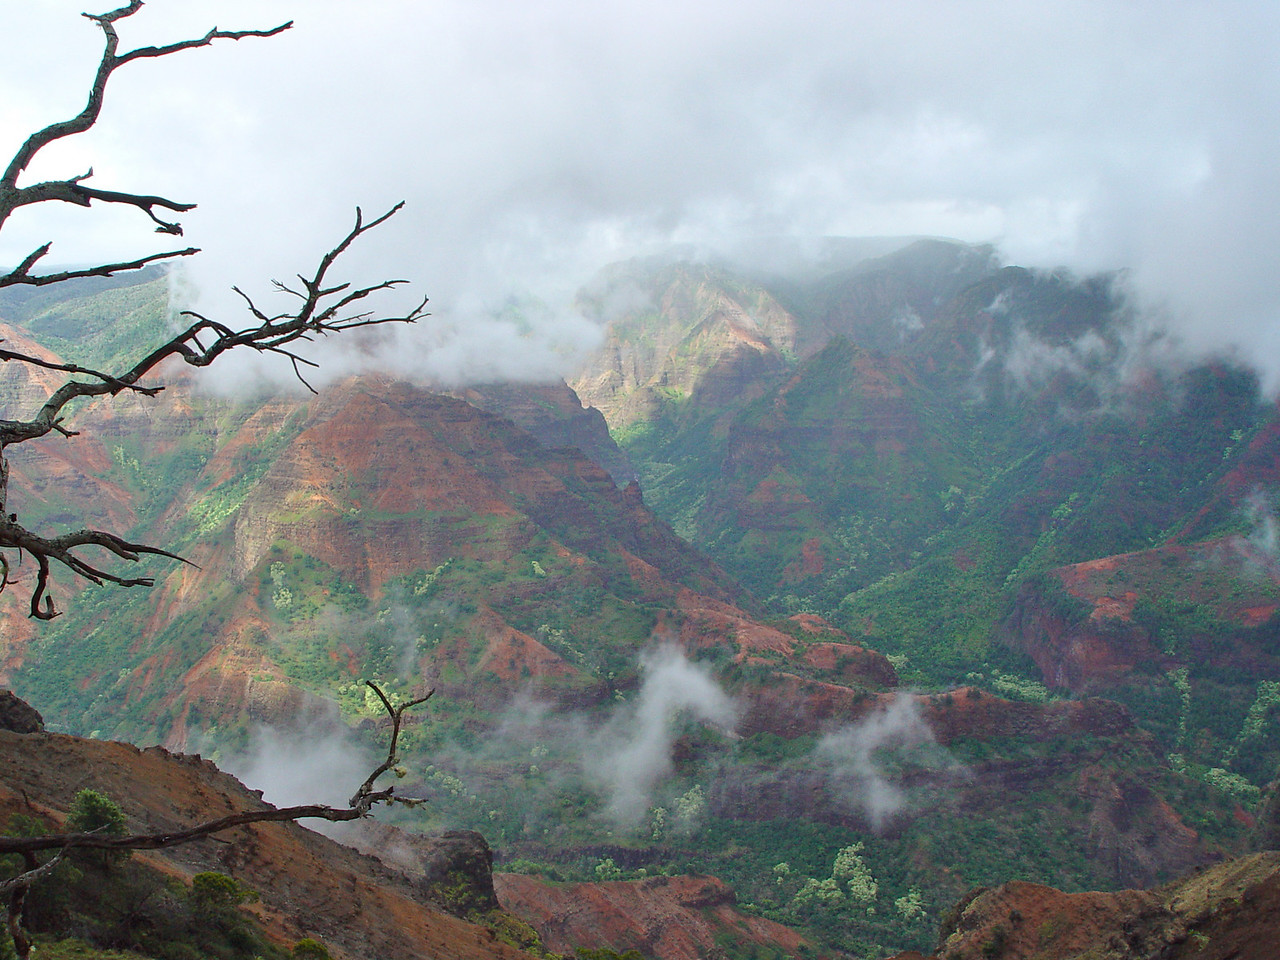 Another Waimea Canyon view.